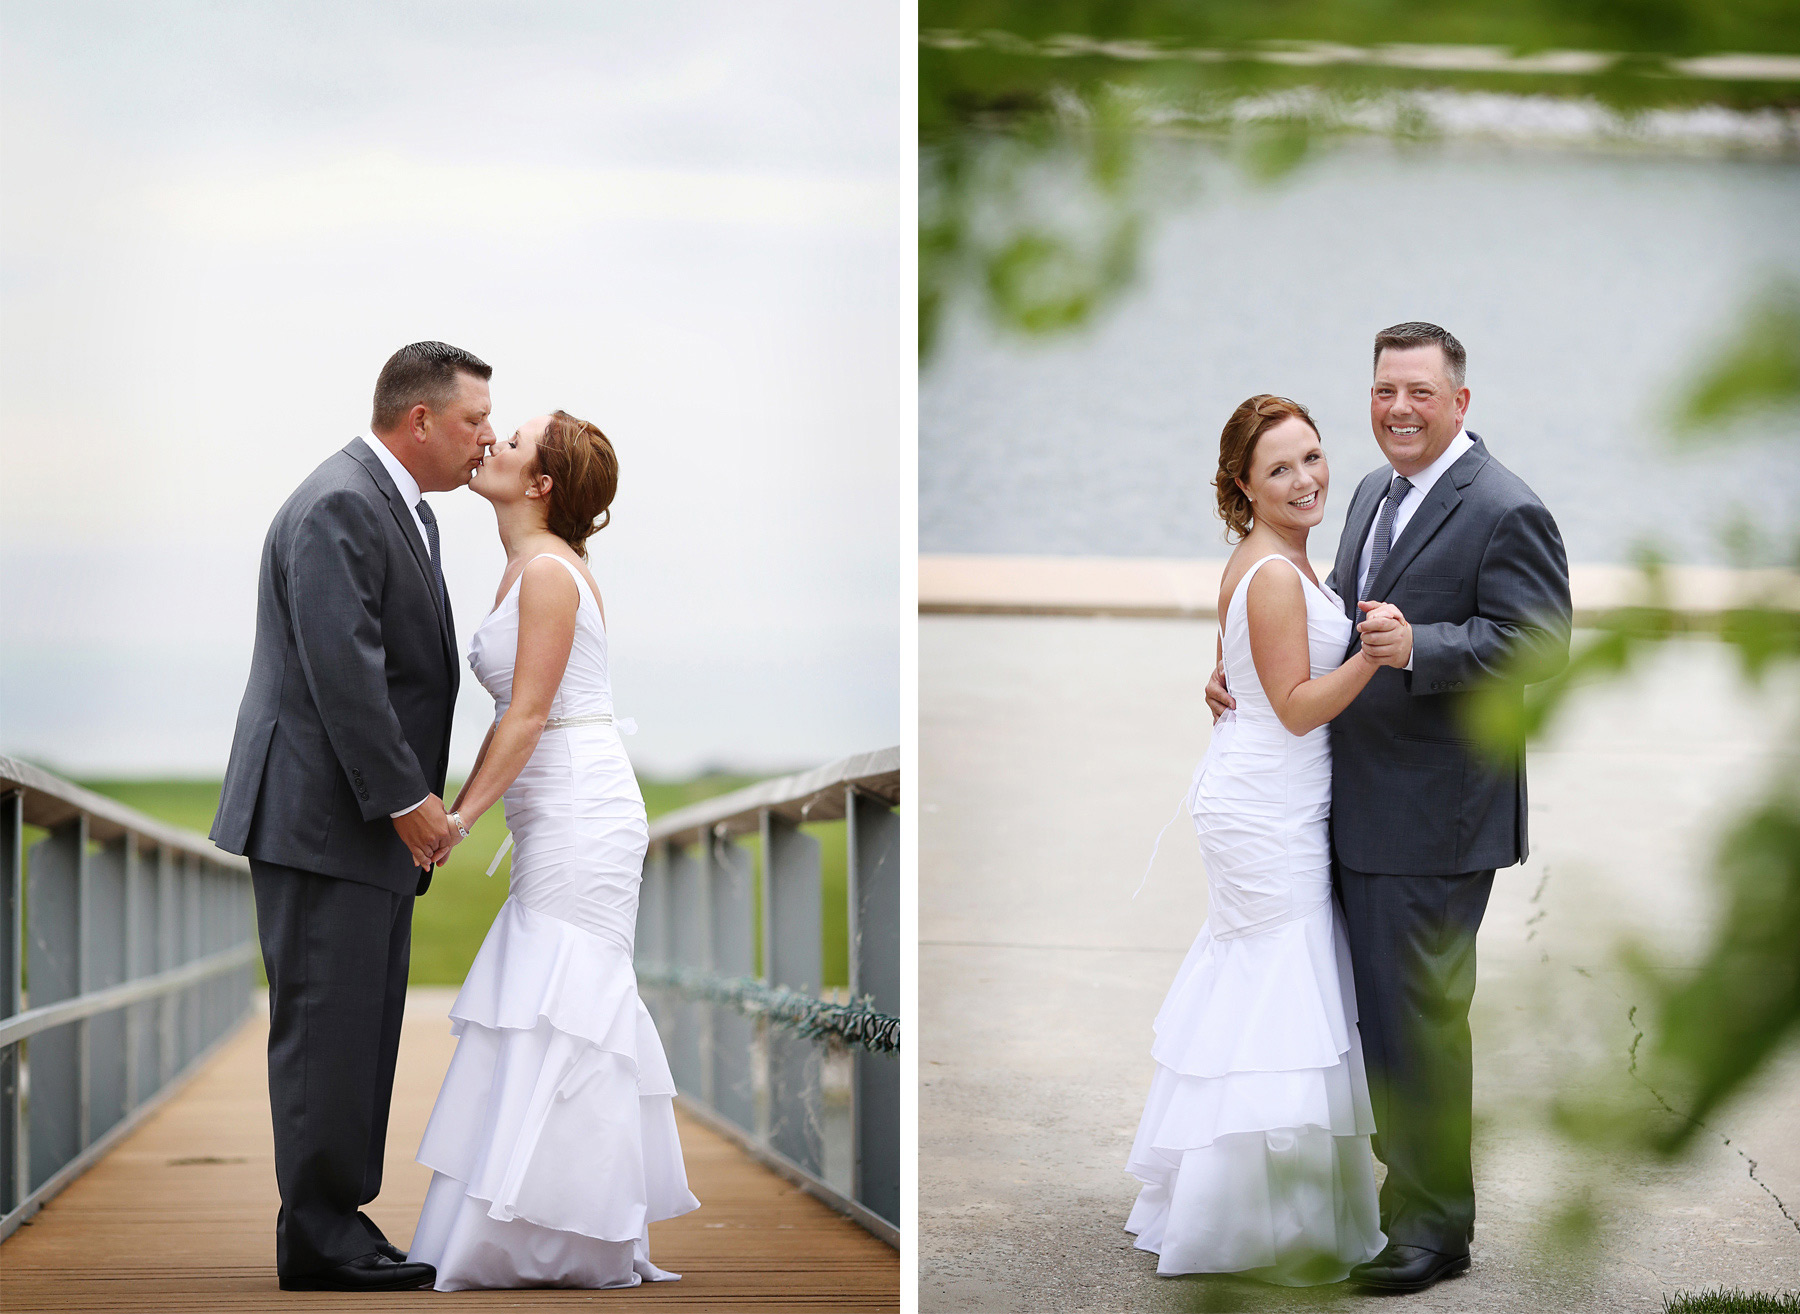 07-Des-Moines-Iowa-Wedding-Photography-by-Vick-Photography-Farm-Wedding-First-Look-Lindsay-&-Chad.jpg